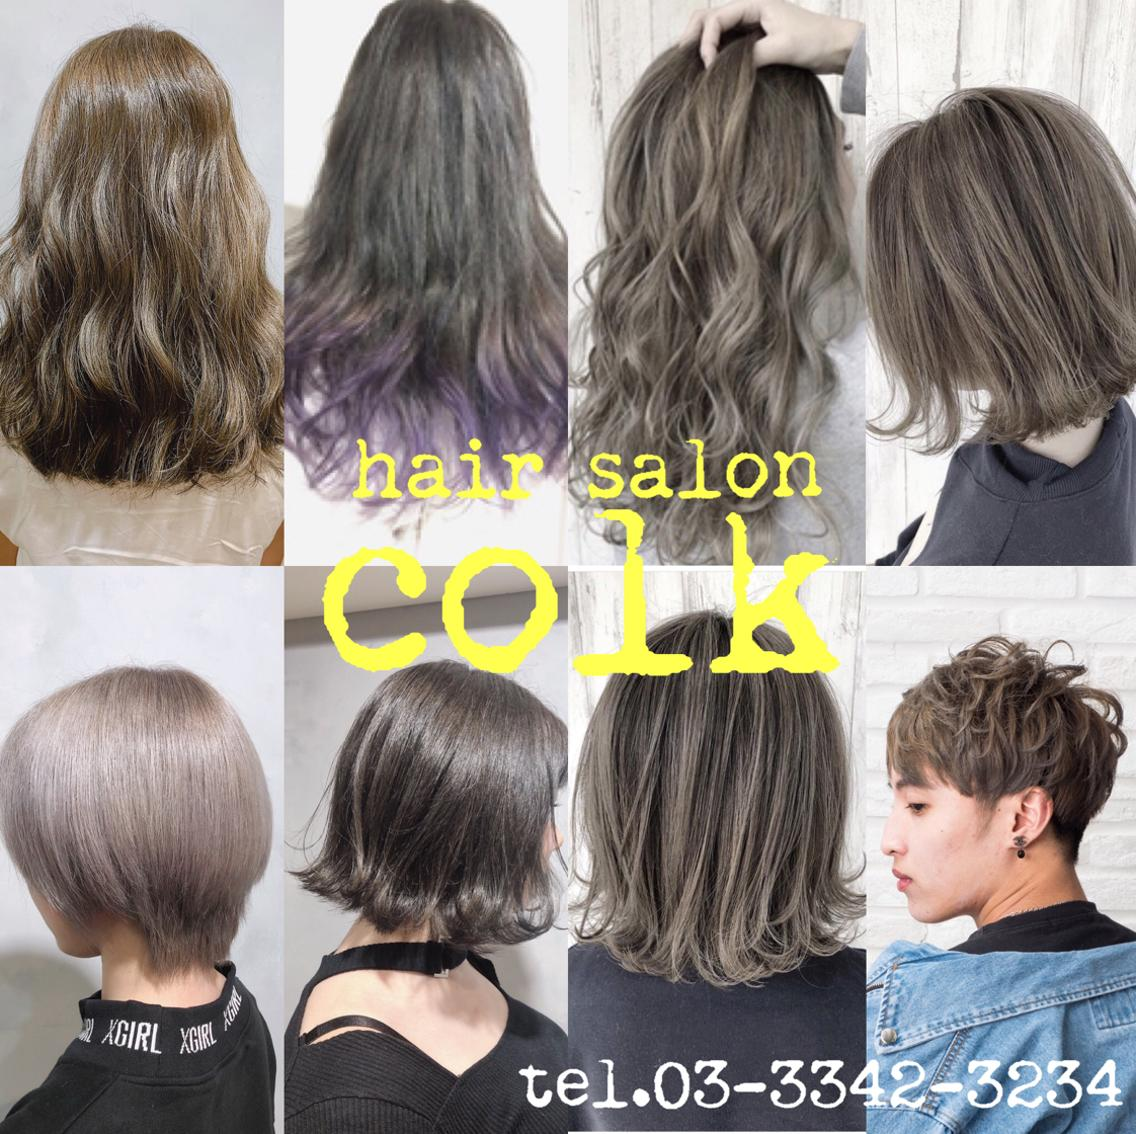 hair salon colk 新宿所属・hairsalon colkの掲載